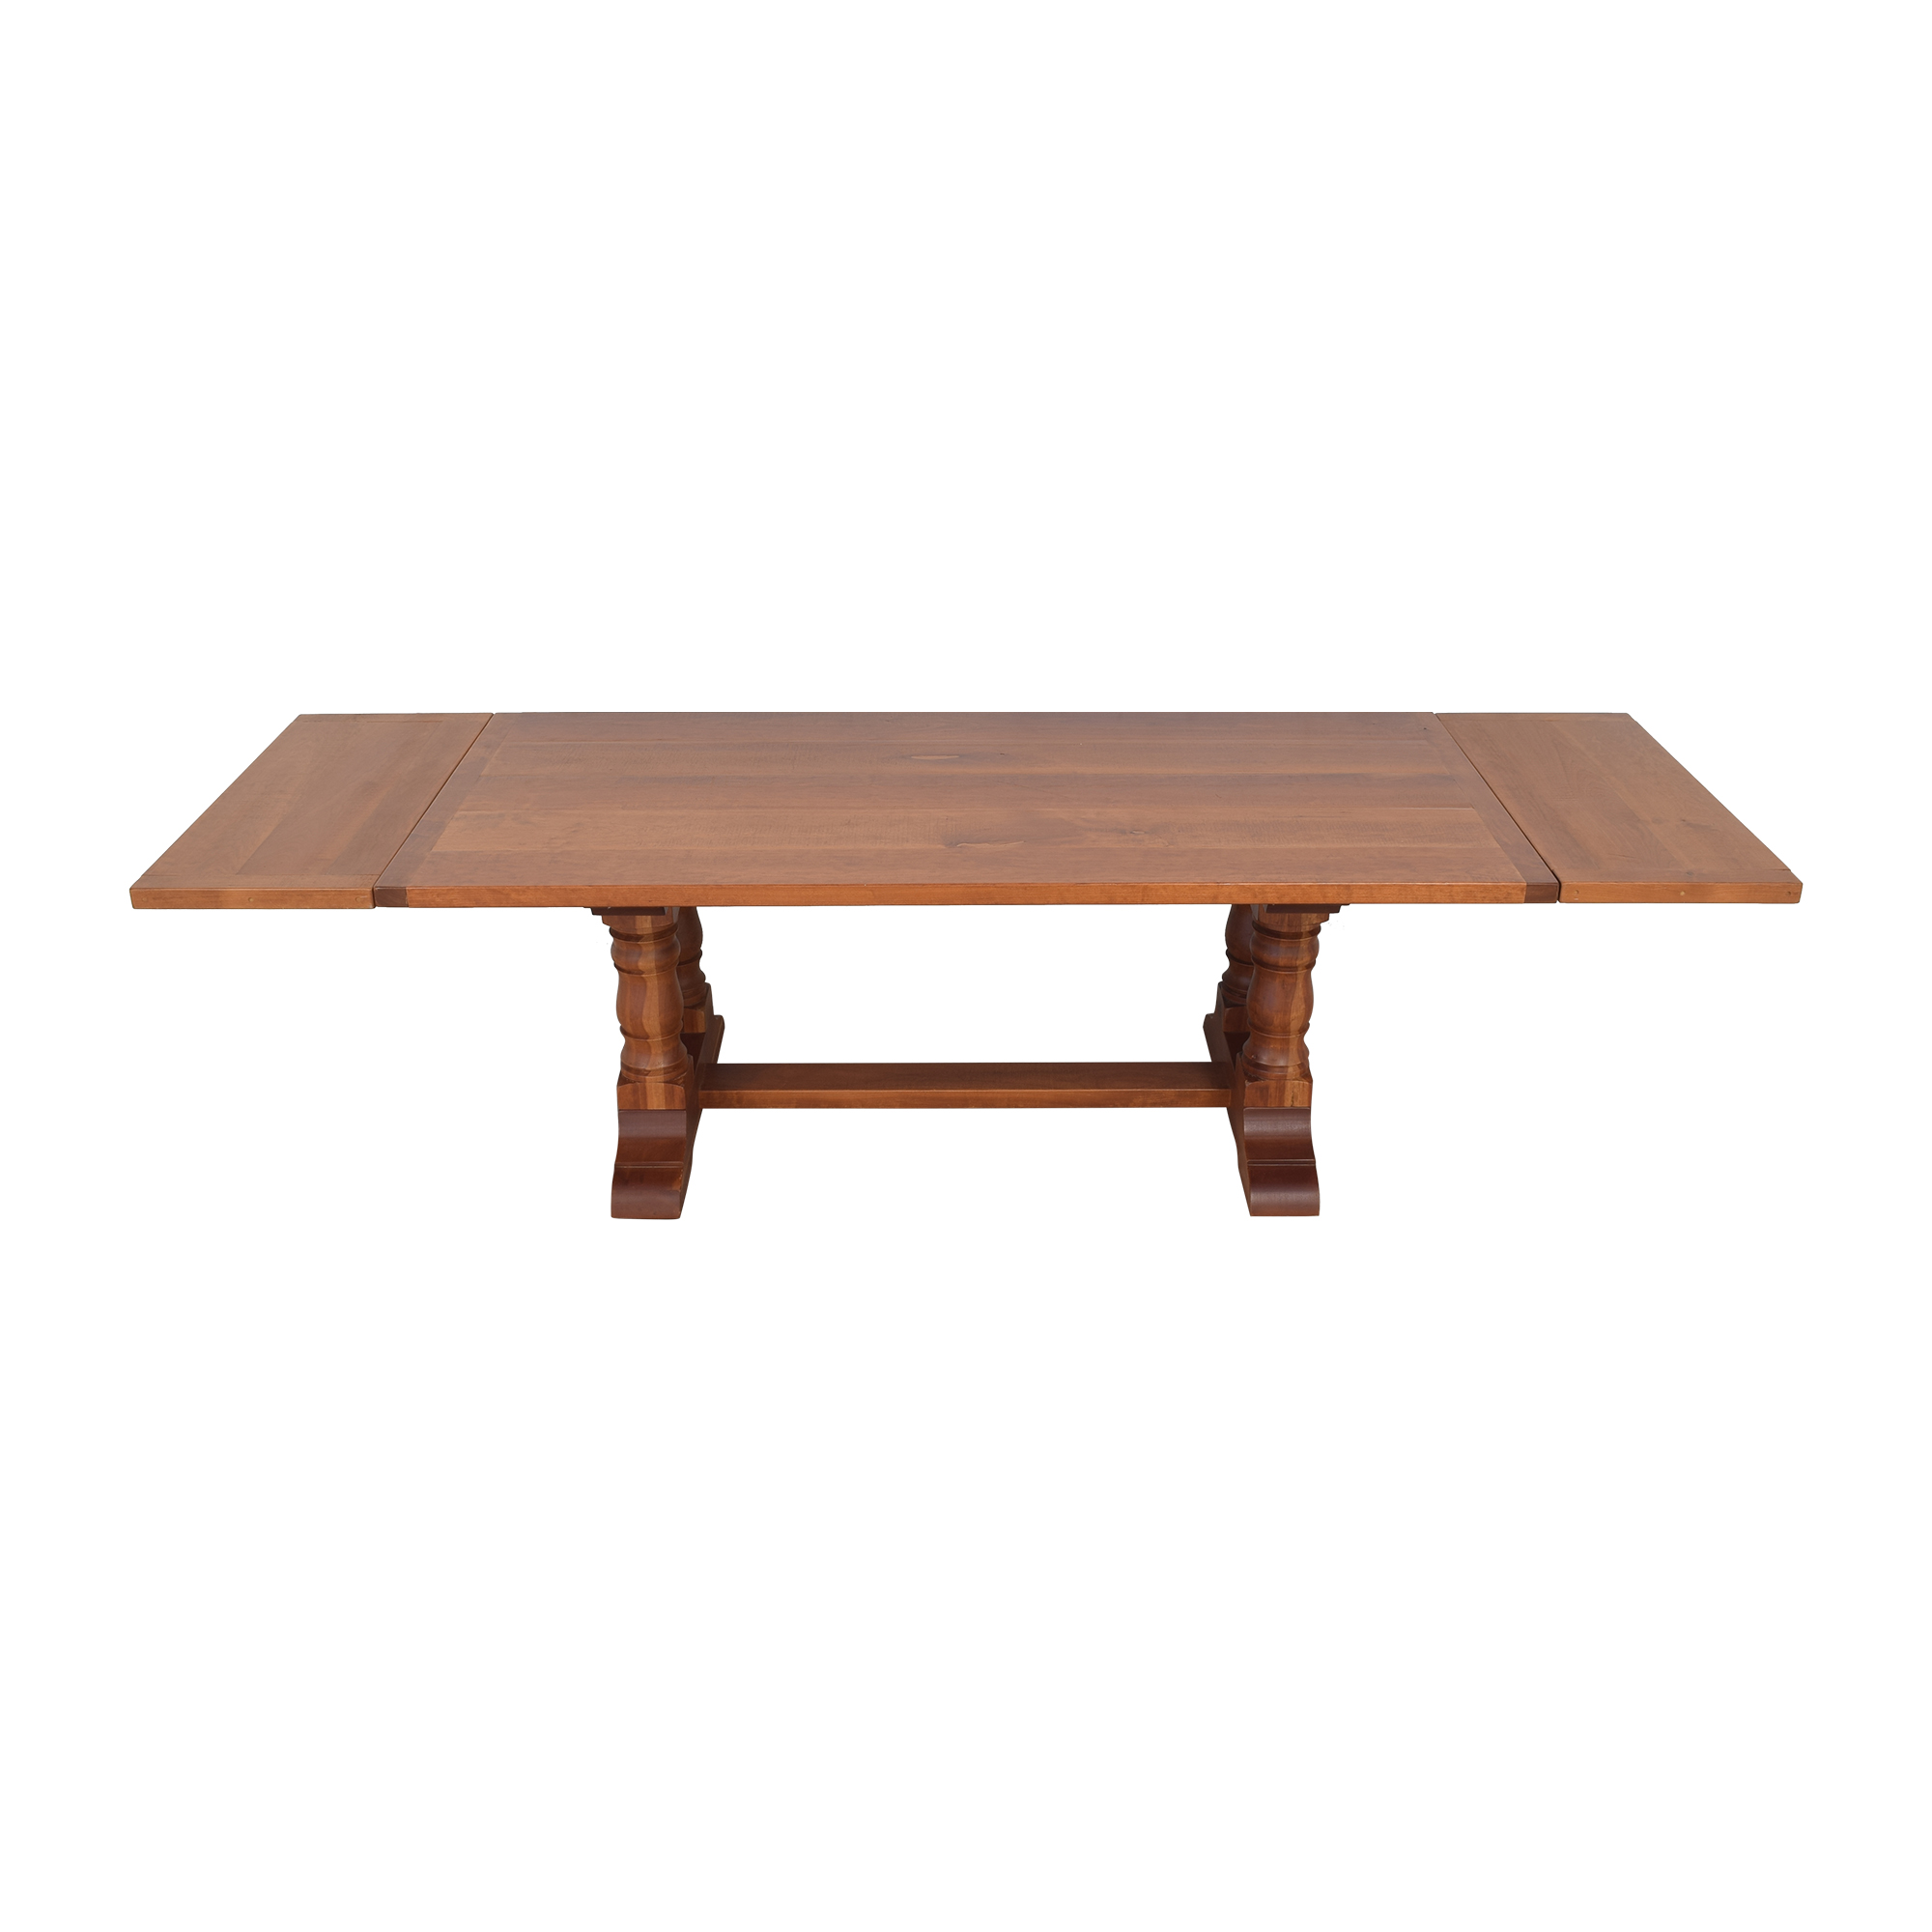 Country Willow Country Willow Silverlake Extendable Dining Table ma